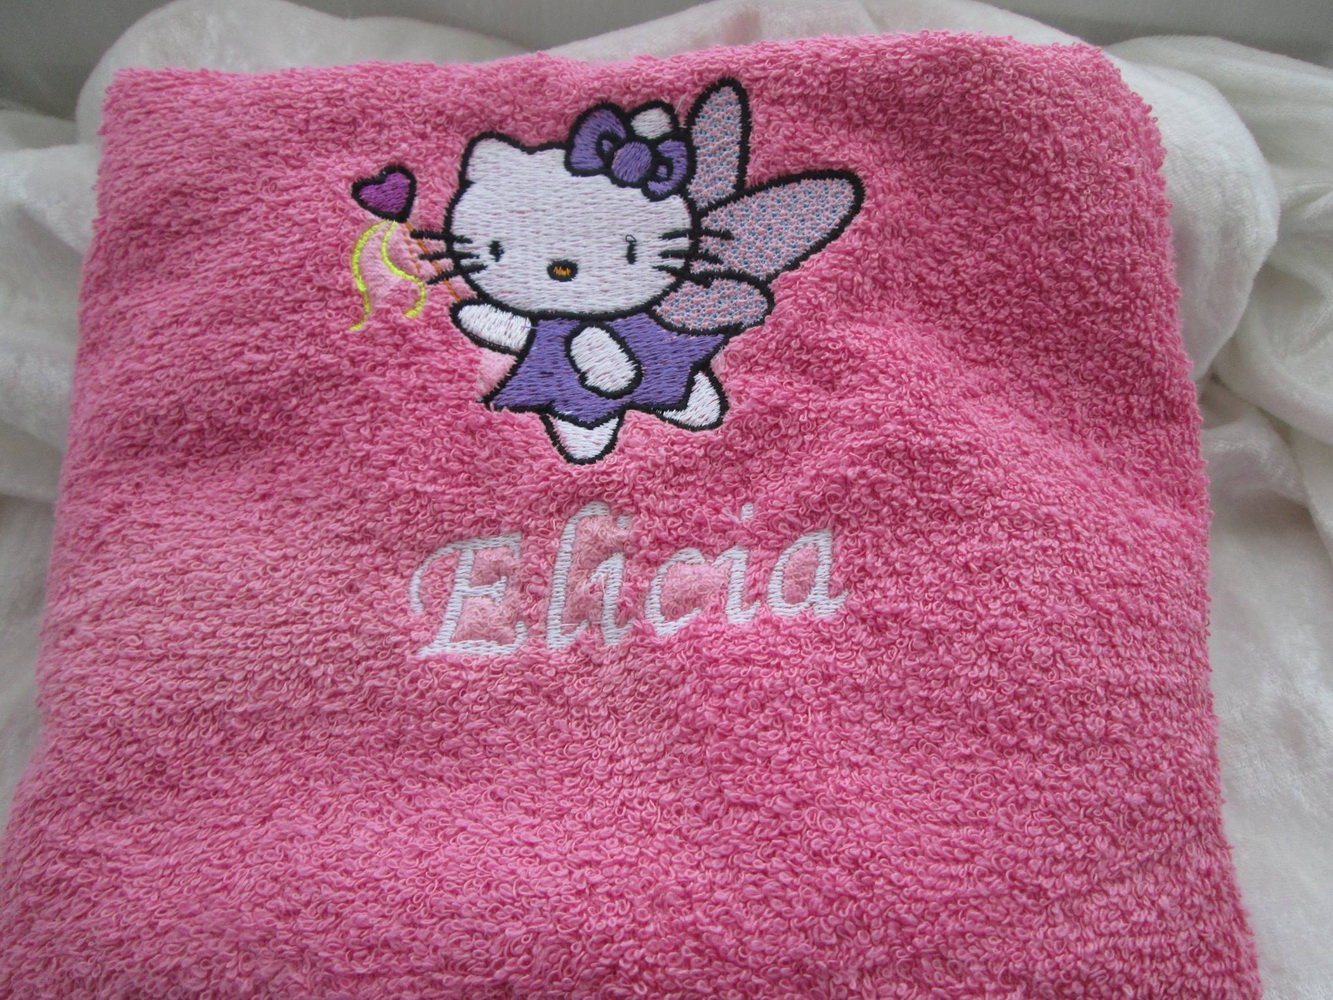 Embroidered girlish towel with Hello Kitty Fairy